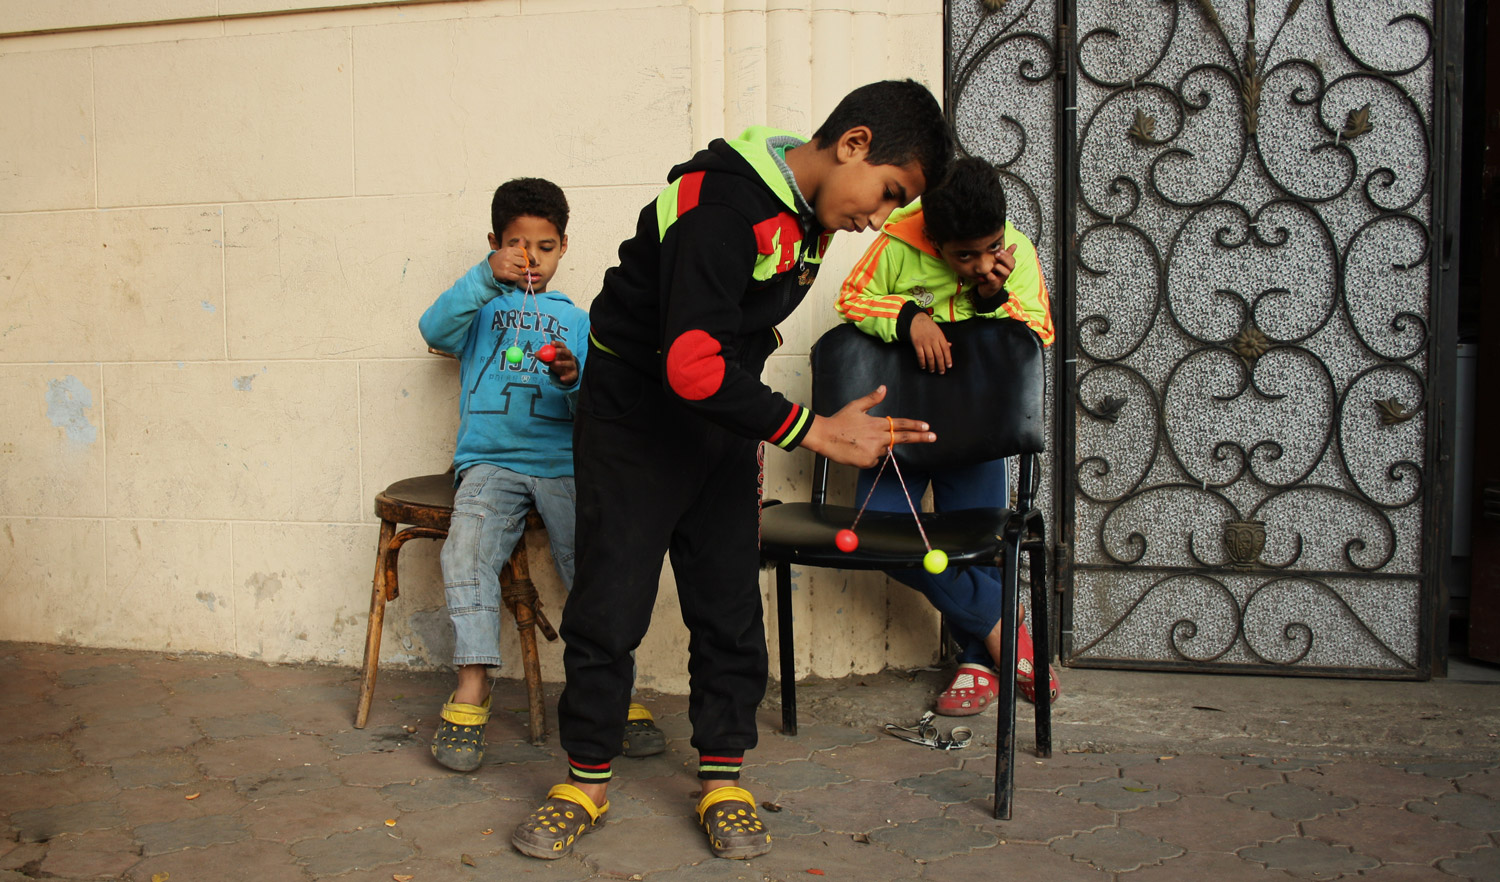 The game is widely known among Cairo's youngsters.